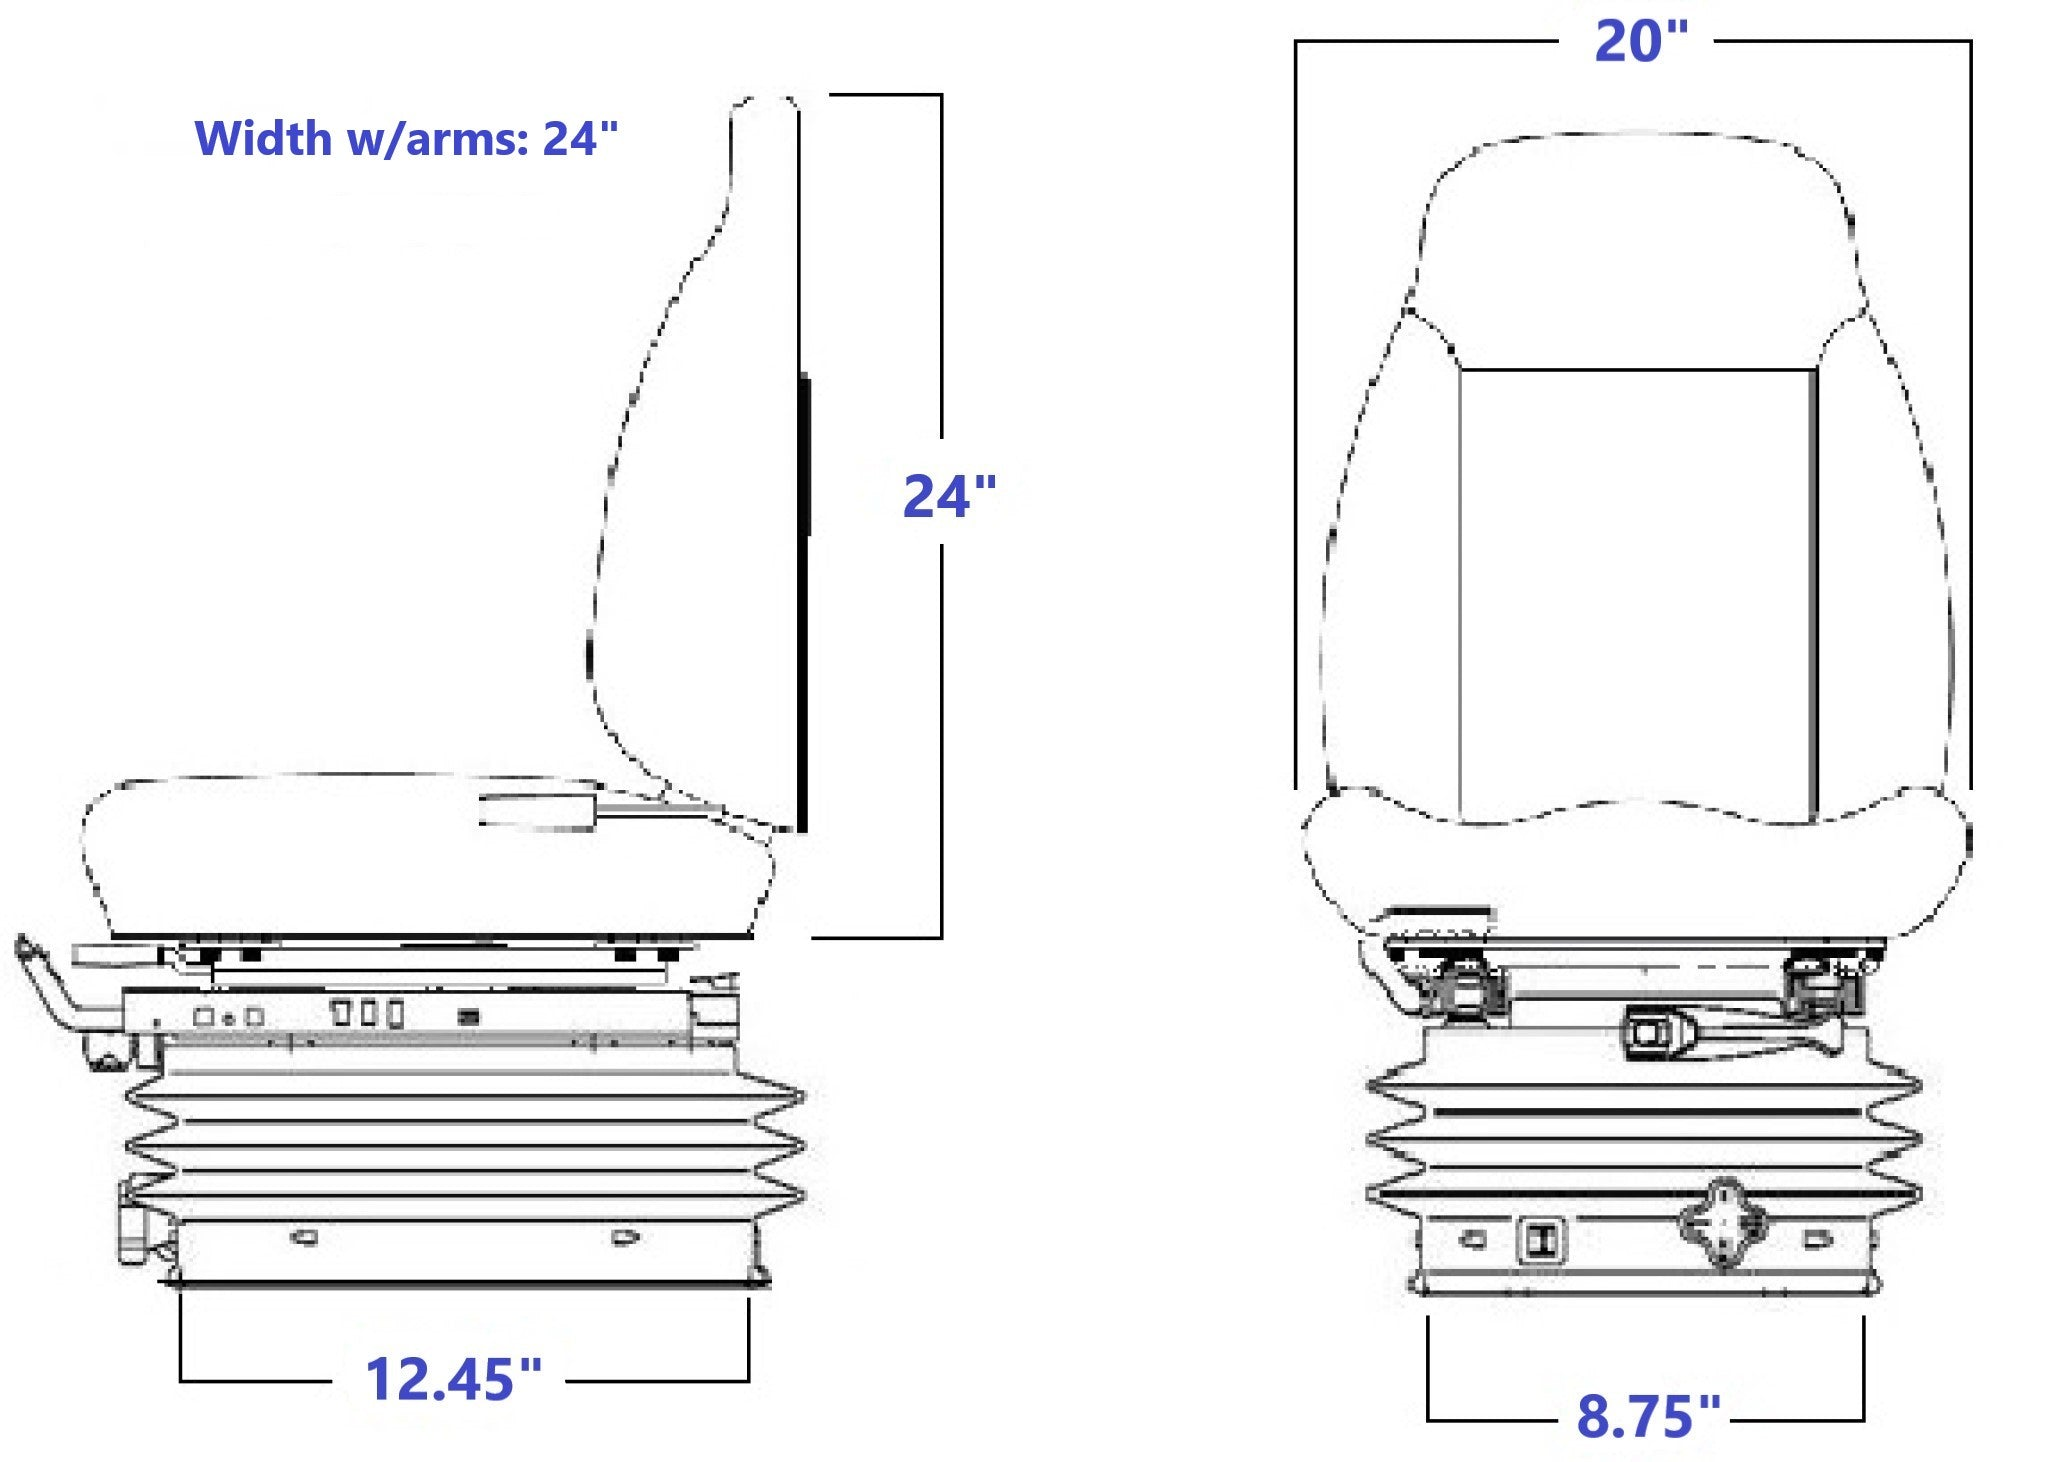 8344 w/arms Technical Drawing